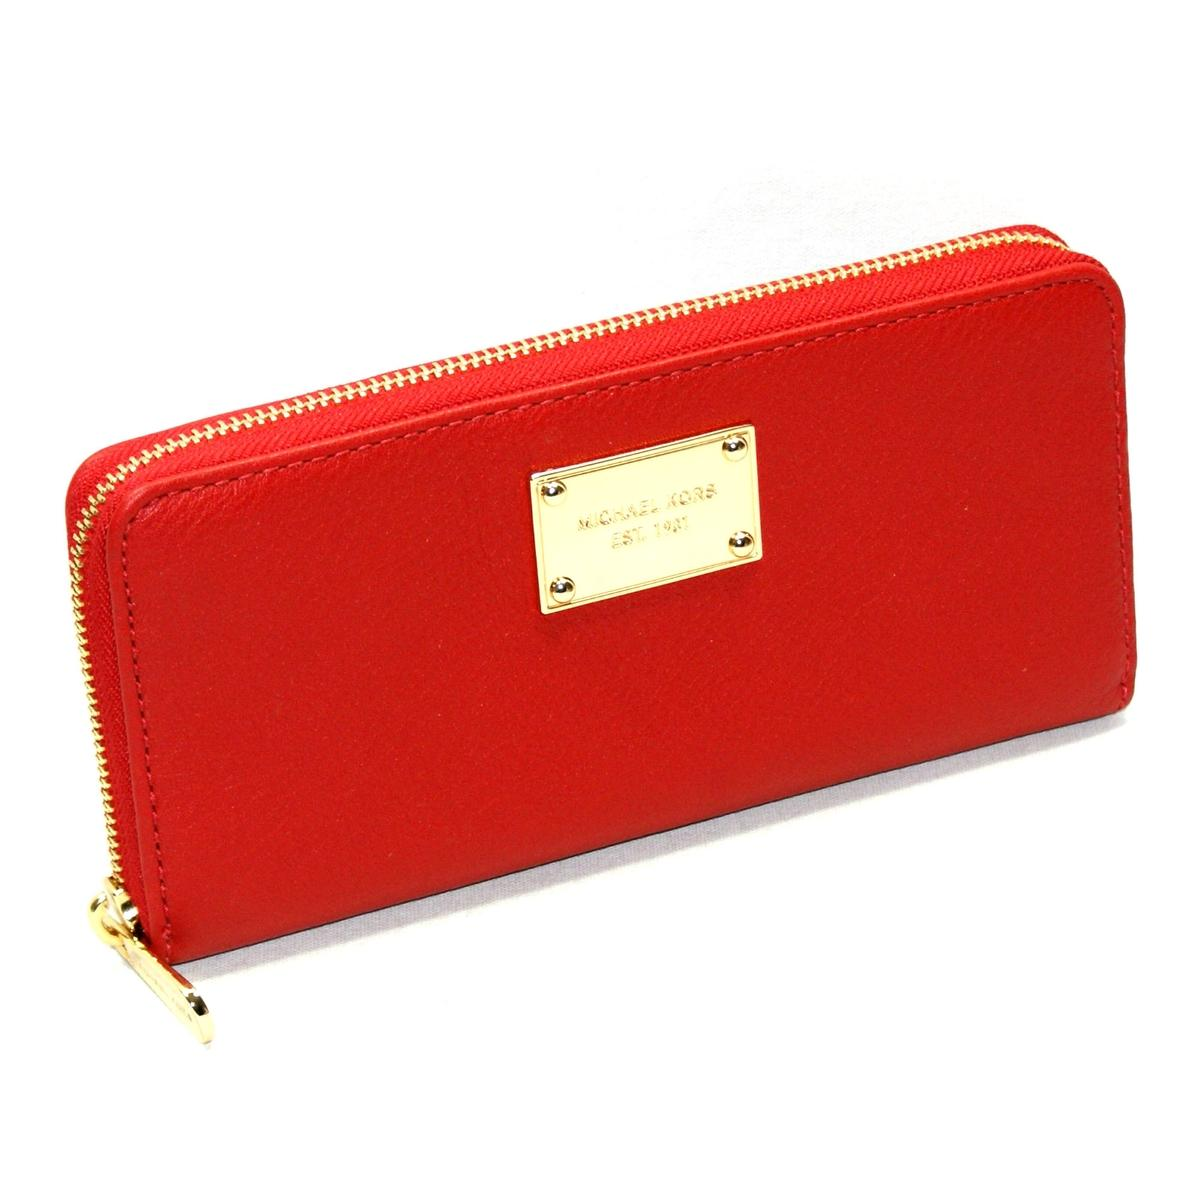 Michael Kors Jet Set Continental Genuine Leather Red